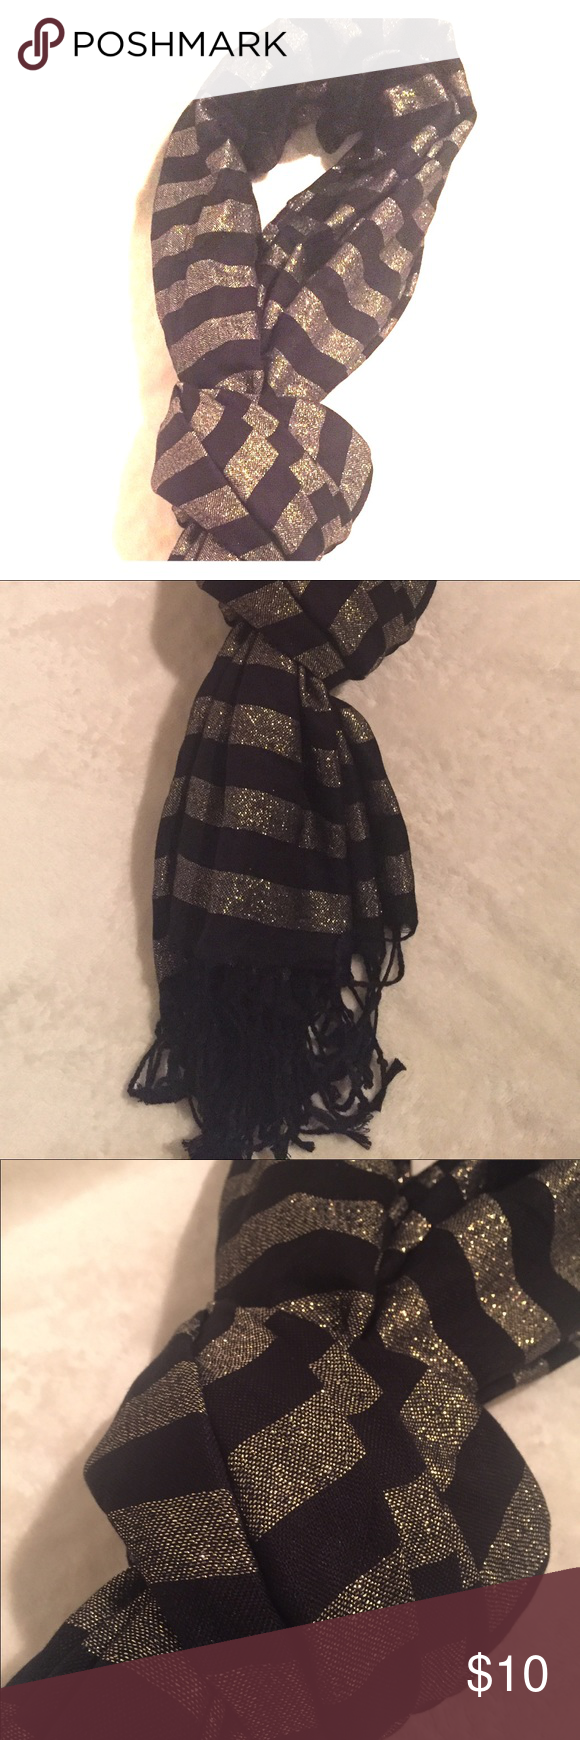 Stripe Scarf Add some shimmer to your outfit. The scarf is embellished with gold threading to make stripes. Square scarf 40inX76in. Can be worn multiple ways! Accessories Scarves & Wraps